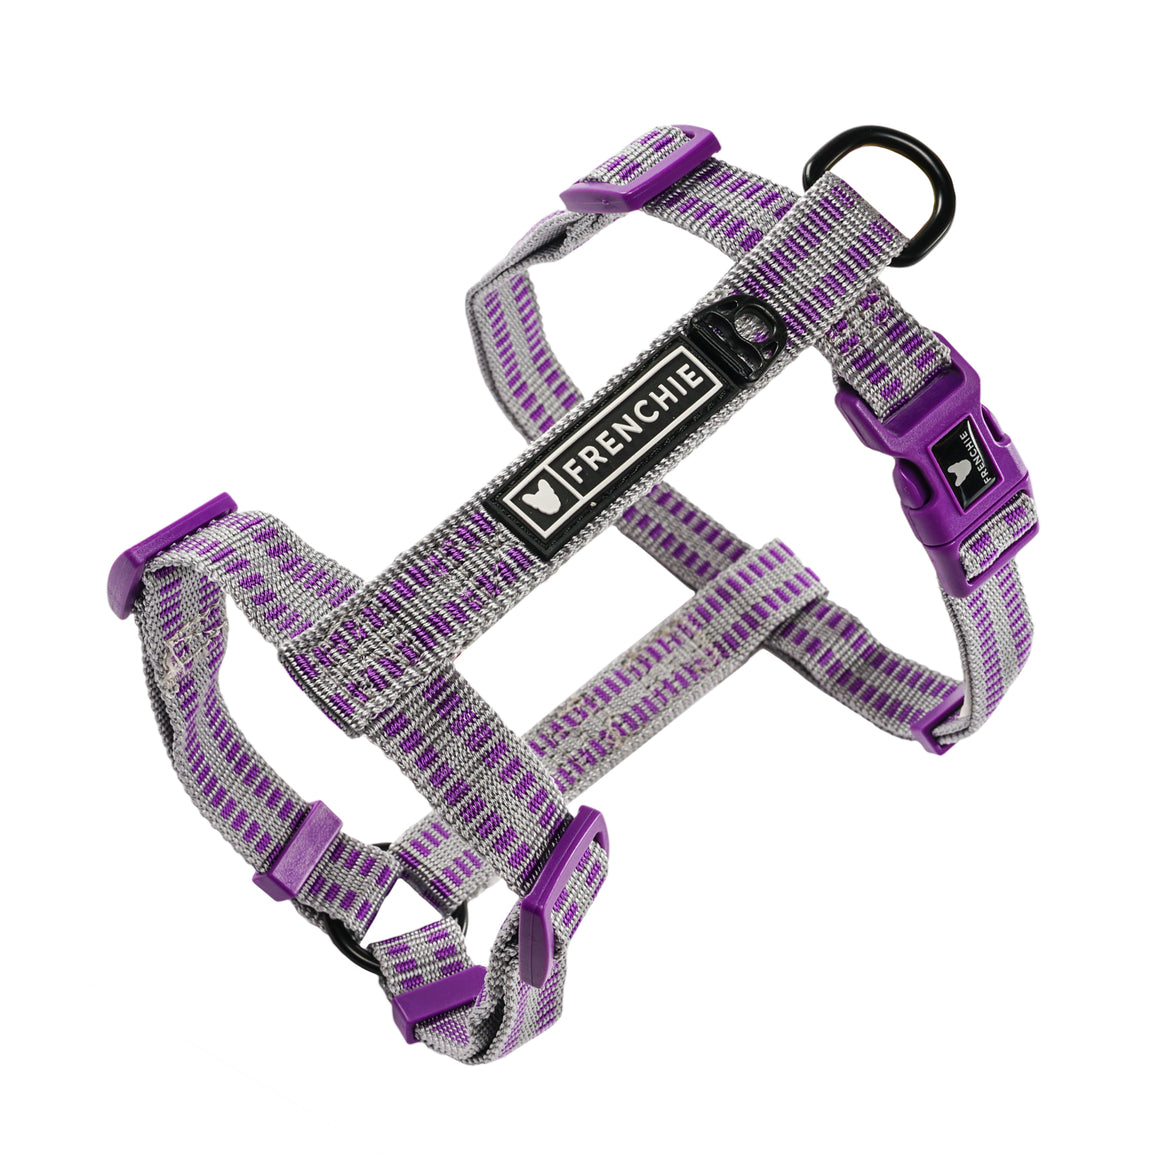 Frenchie Strap Harness - Purple and Silver